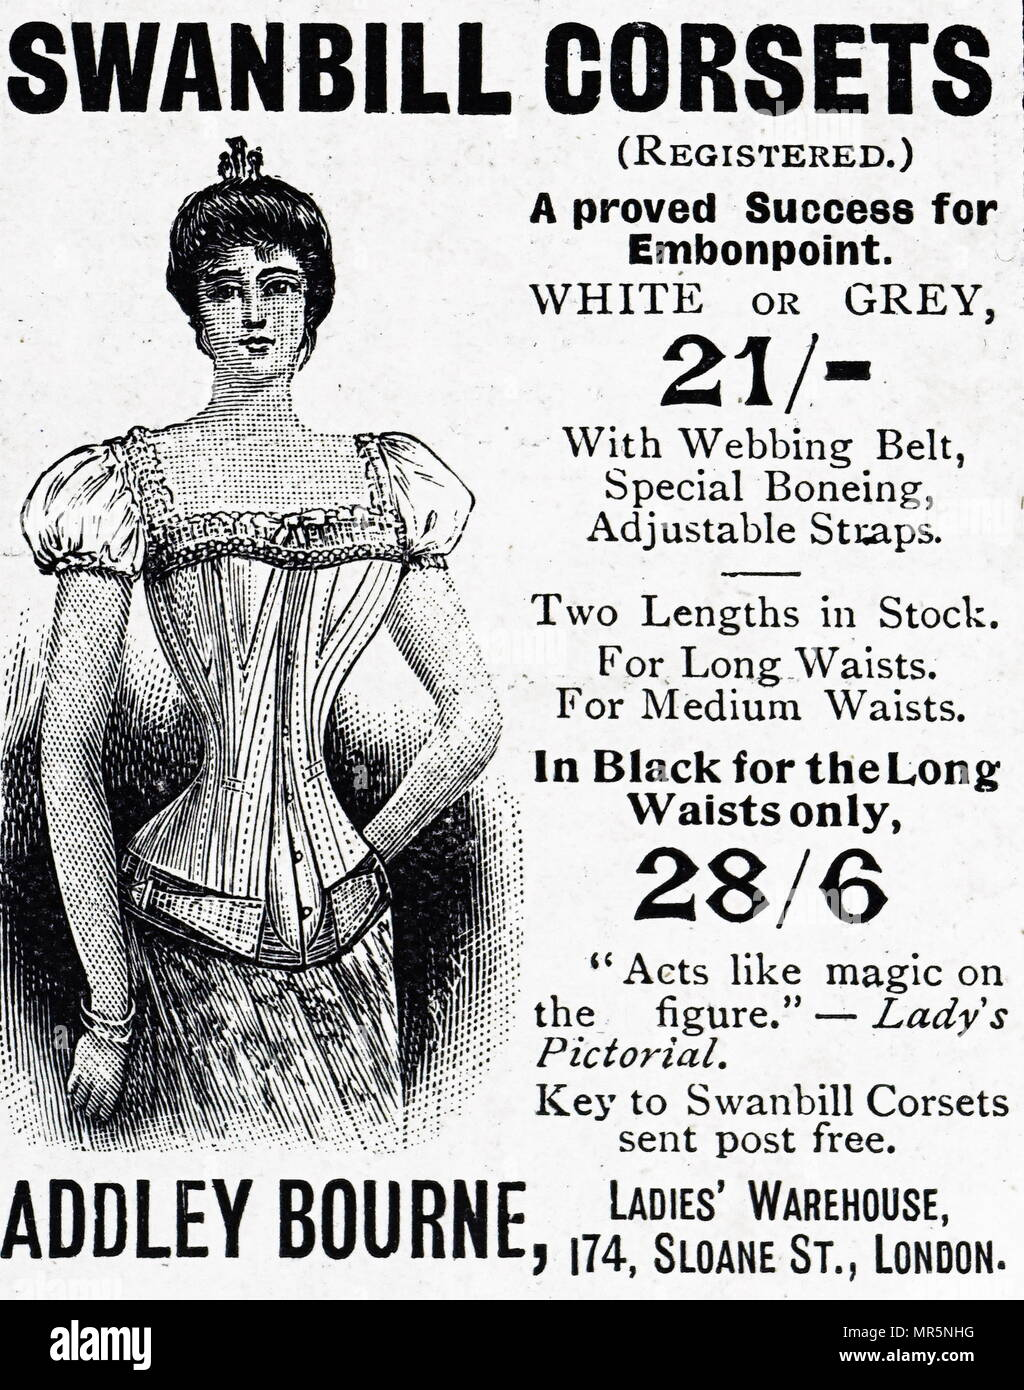 e1c2c93d621 Advertisement for Swanbill Corsets made with whalebone. Dated 19th century  - Stock Image